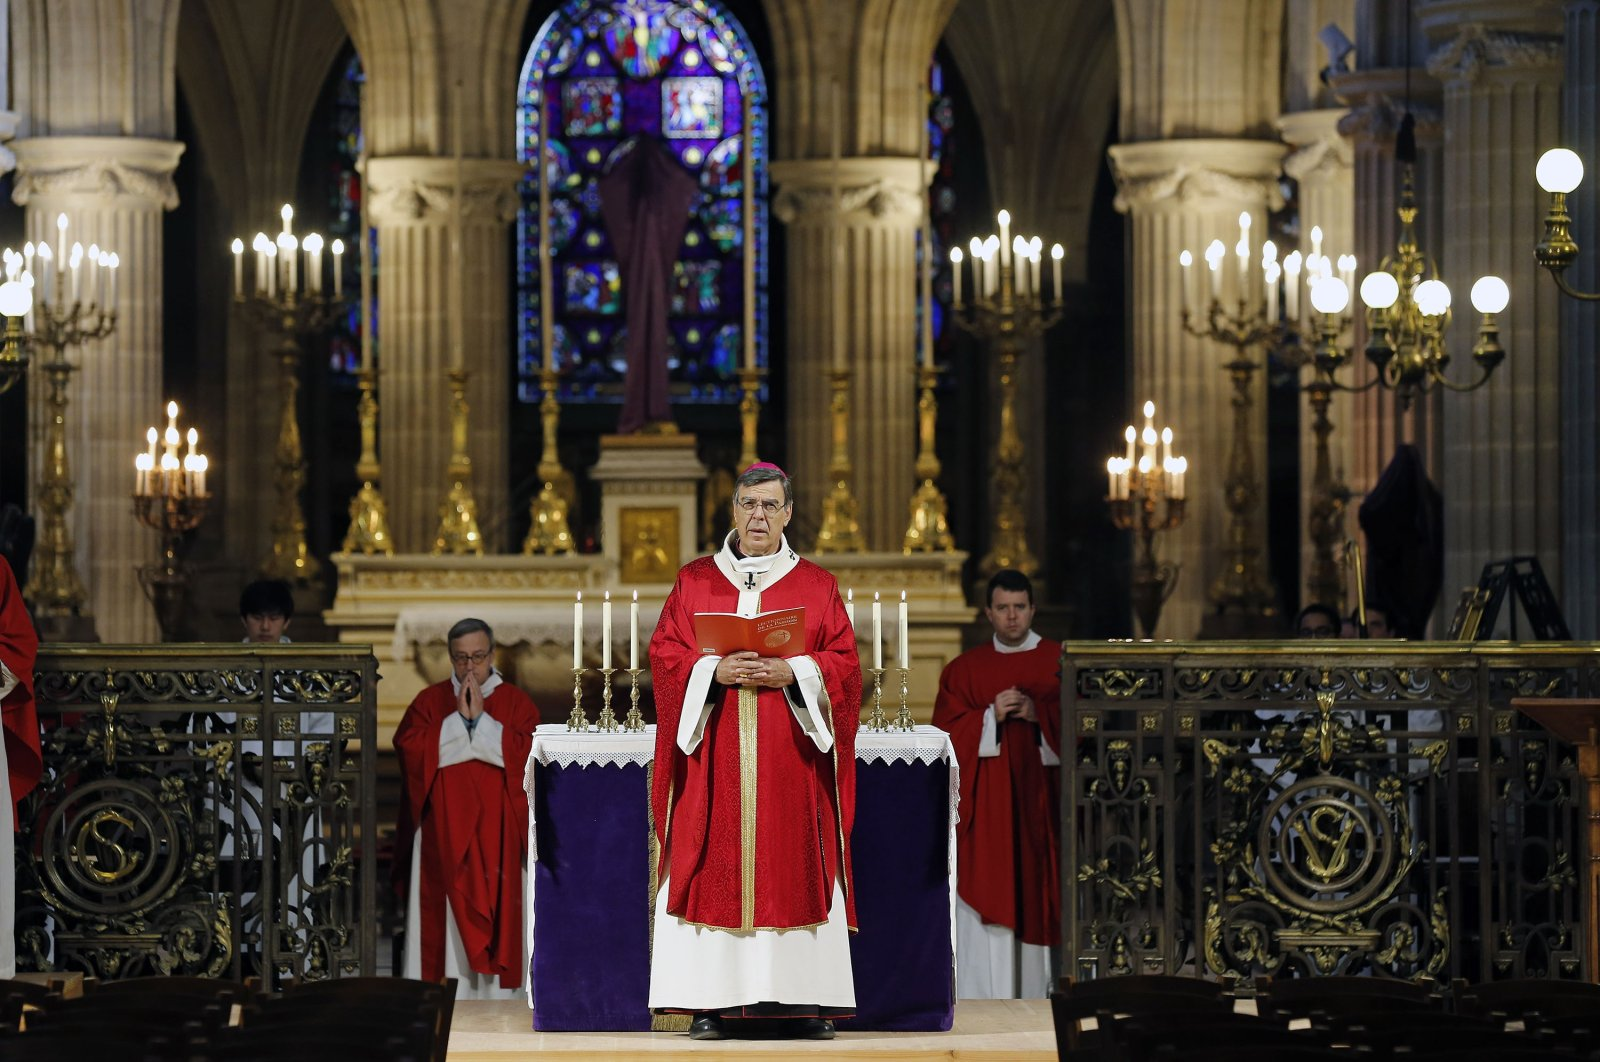 """Archbishop of Paris Michel Aupetit conducts Palm Sunday mass behind closed doors and inside an empty church at """"Saint-Germain-l'Auxerrois"""" during the early days of the COVID-19 pandemic, Paris, France,  April 5, 2020. (Getty Images)"""